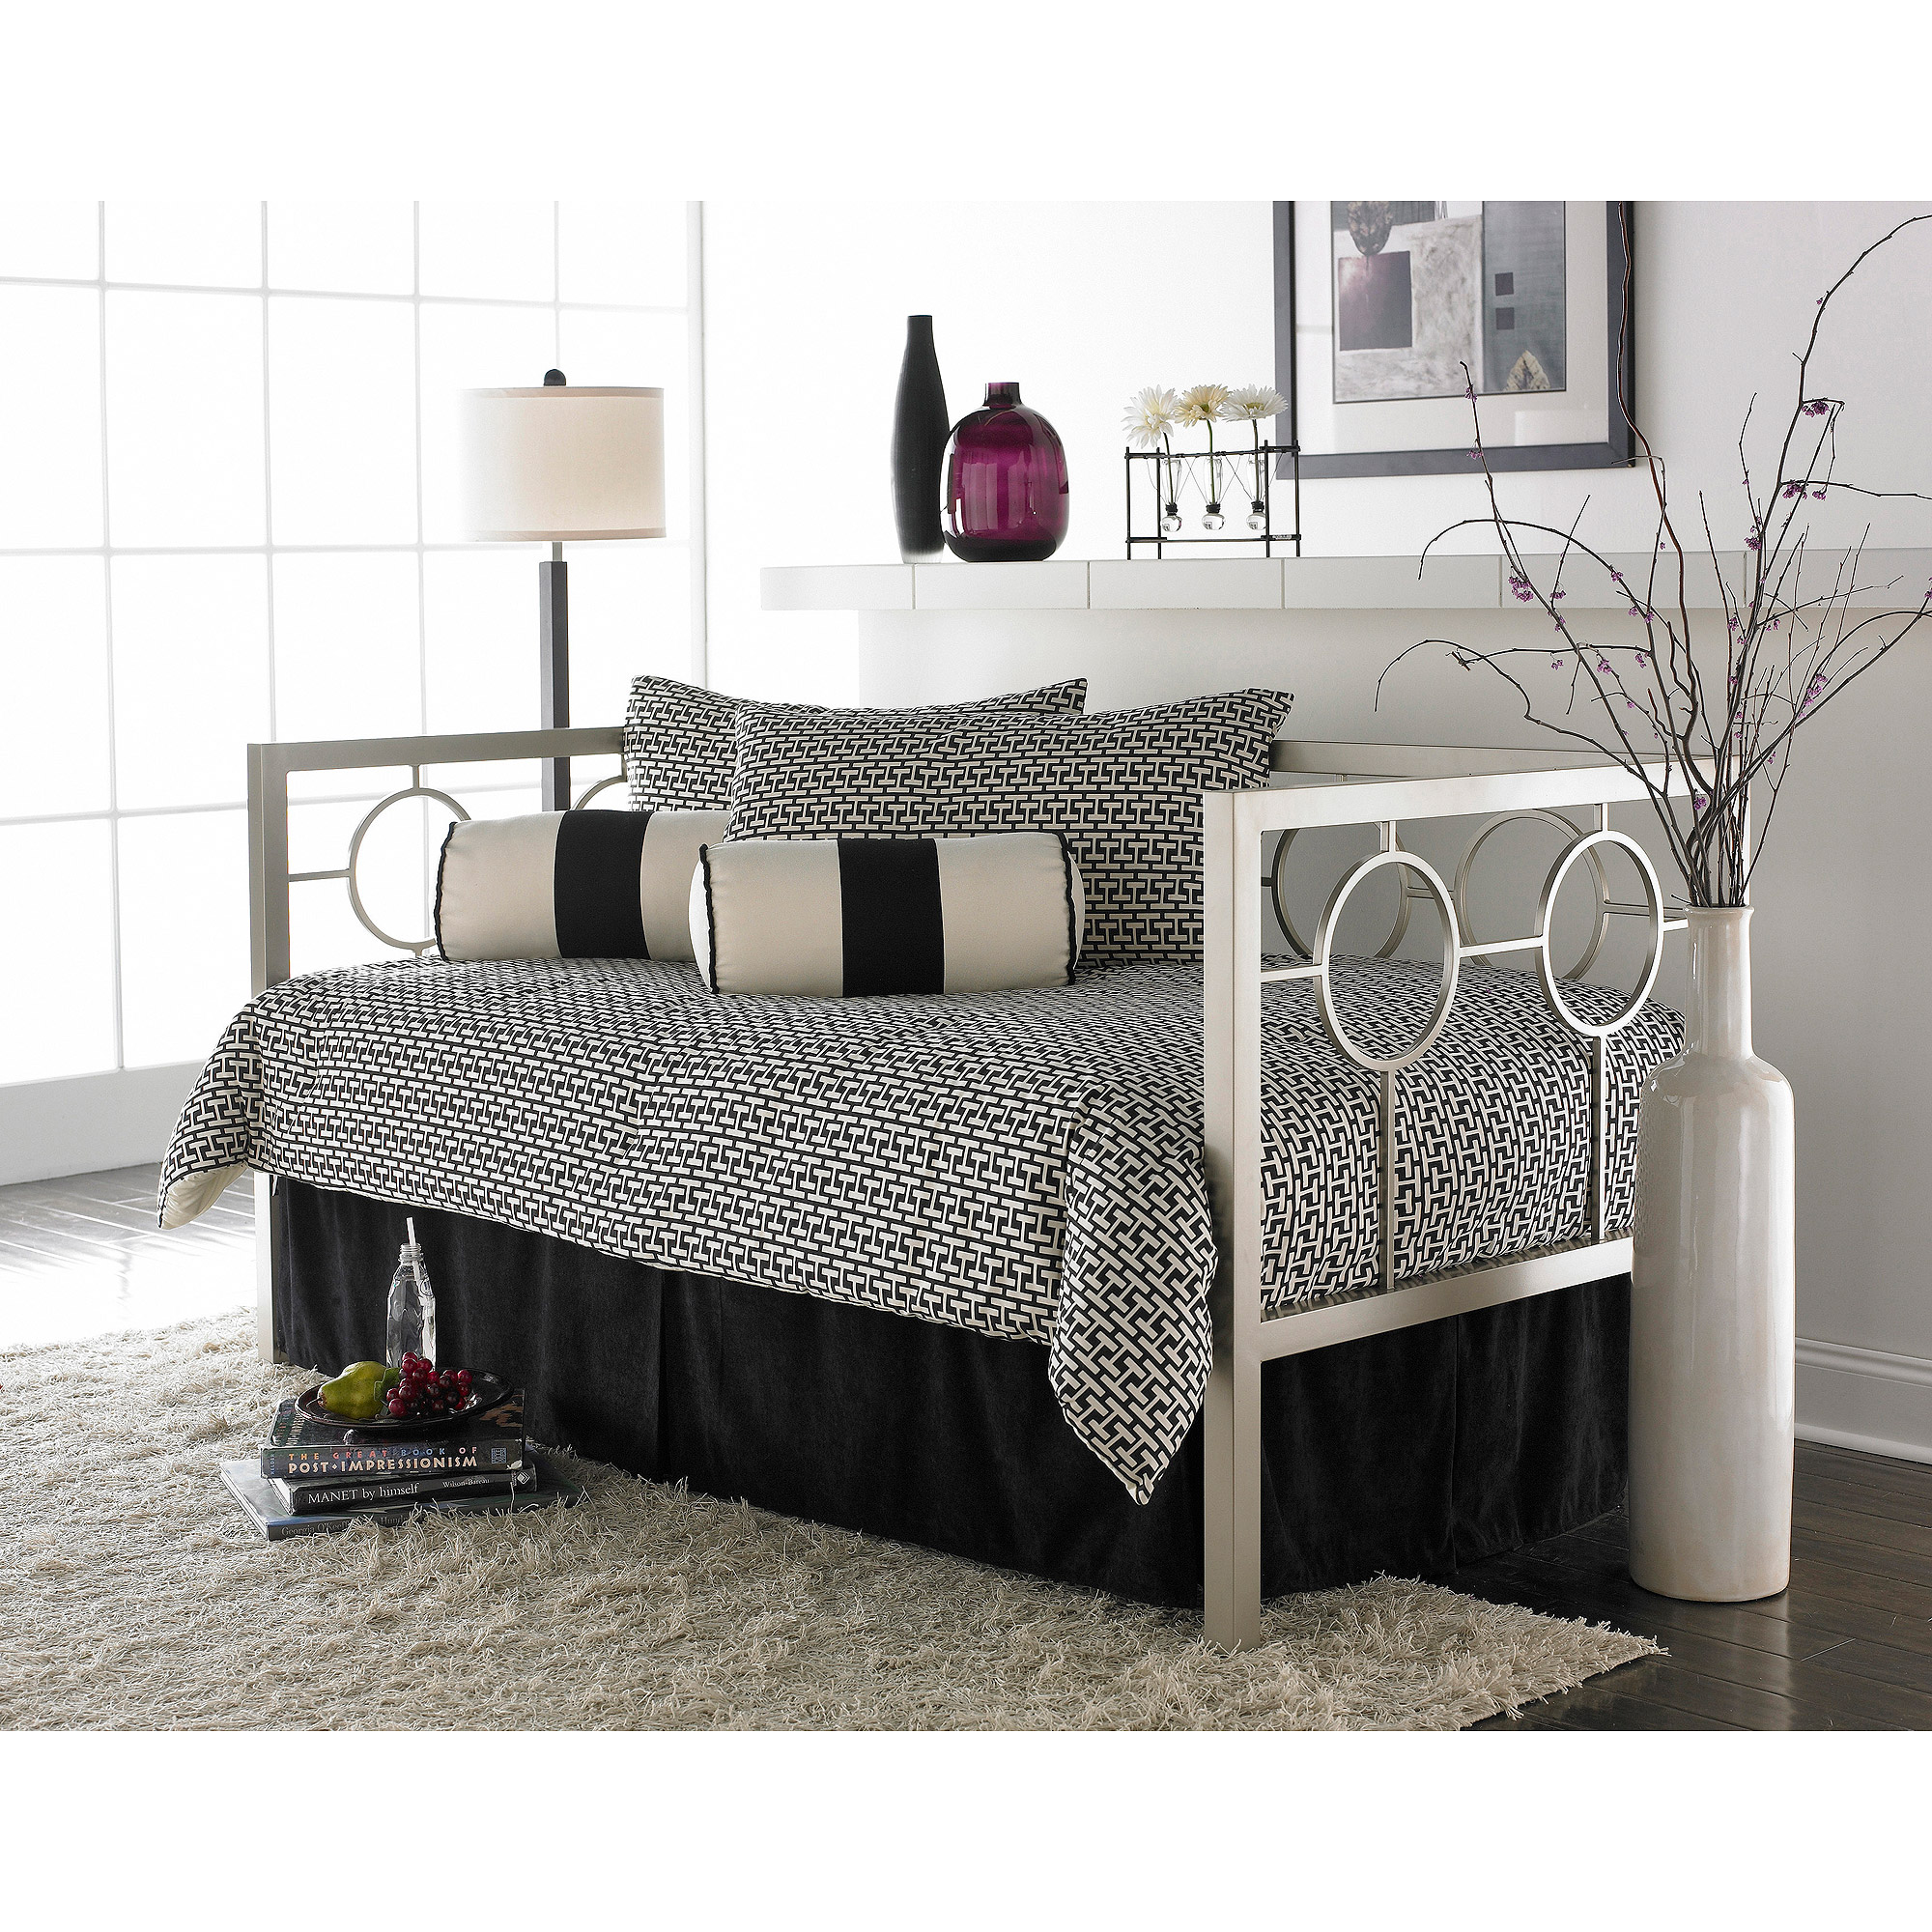 Leggett & Platt Fashion Bed Group Astoria Daybed without Link Spring, Champagne